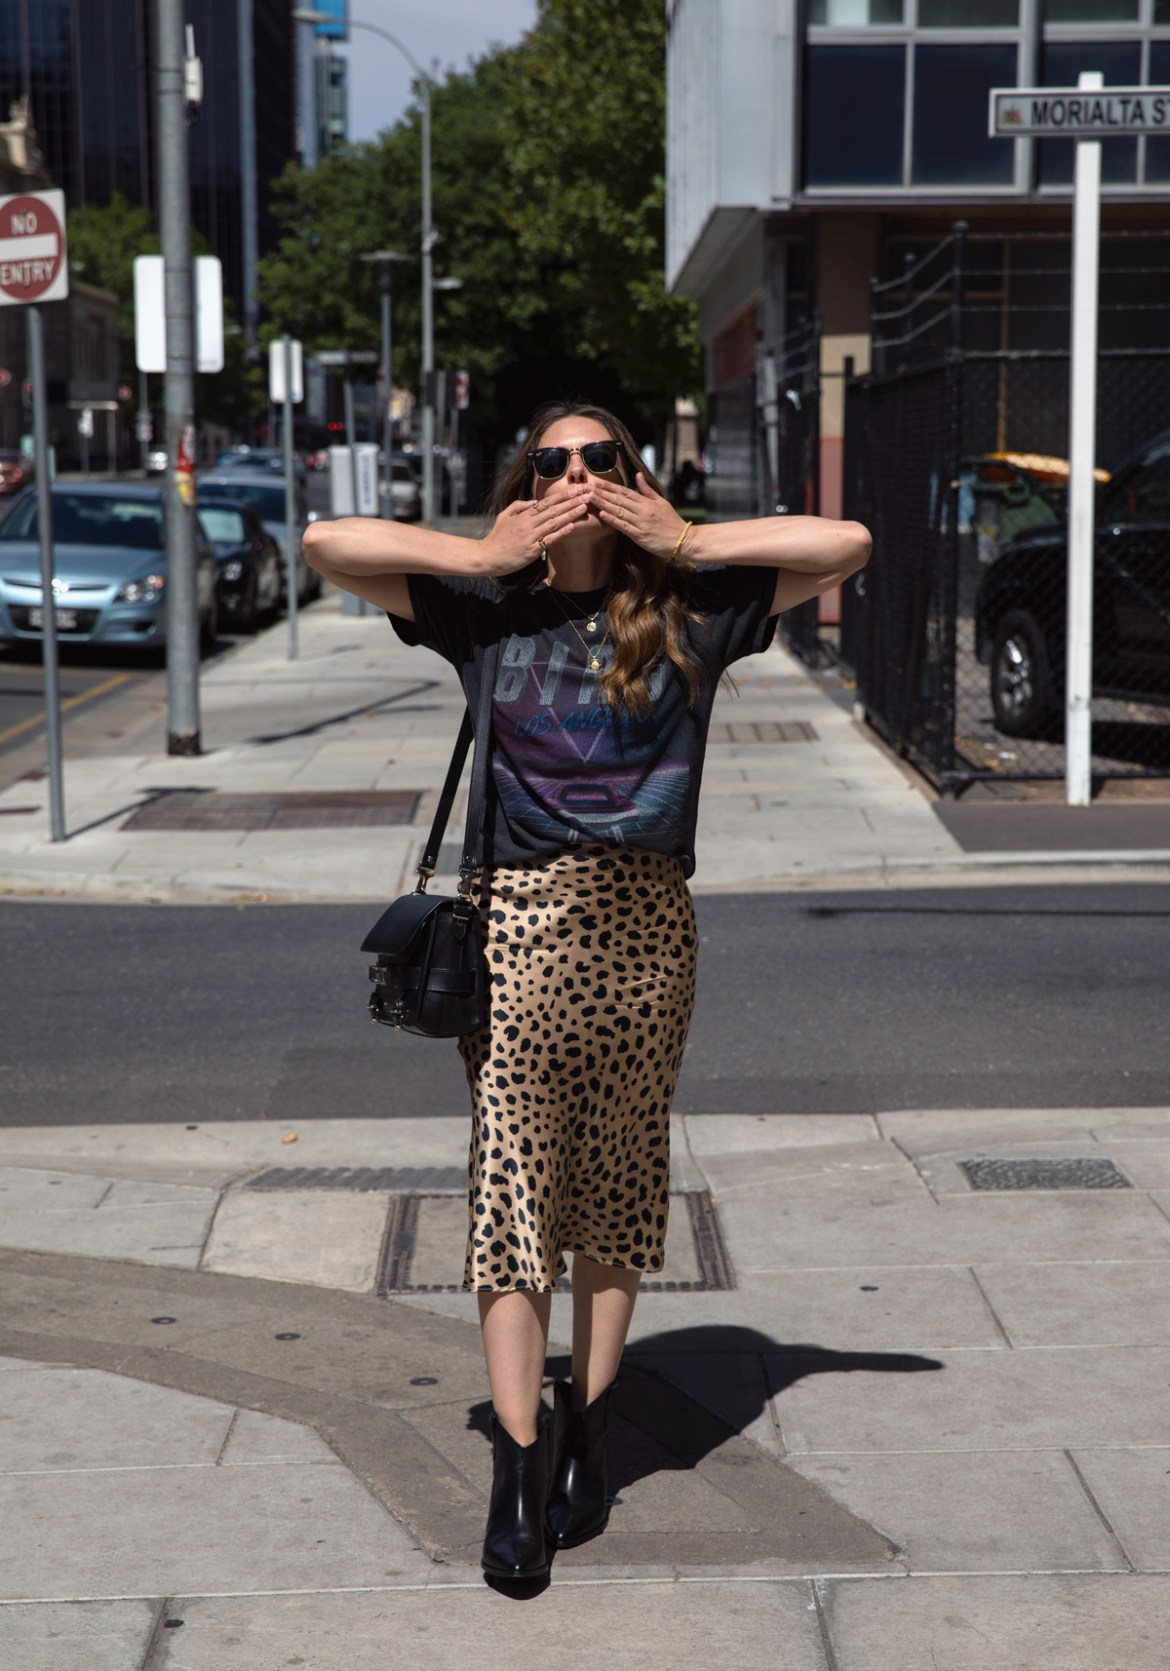 most worn Anine Bing viper vintage tee with Realisation Par Naomi Wild things skirt Isabel Marant boots and Proenza Schouler PS11 bag worn by Jenelle Witty from Australian travel and fashion blog Inspiring Wit